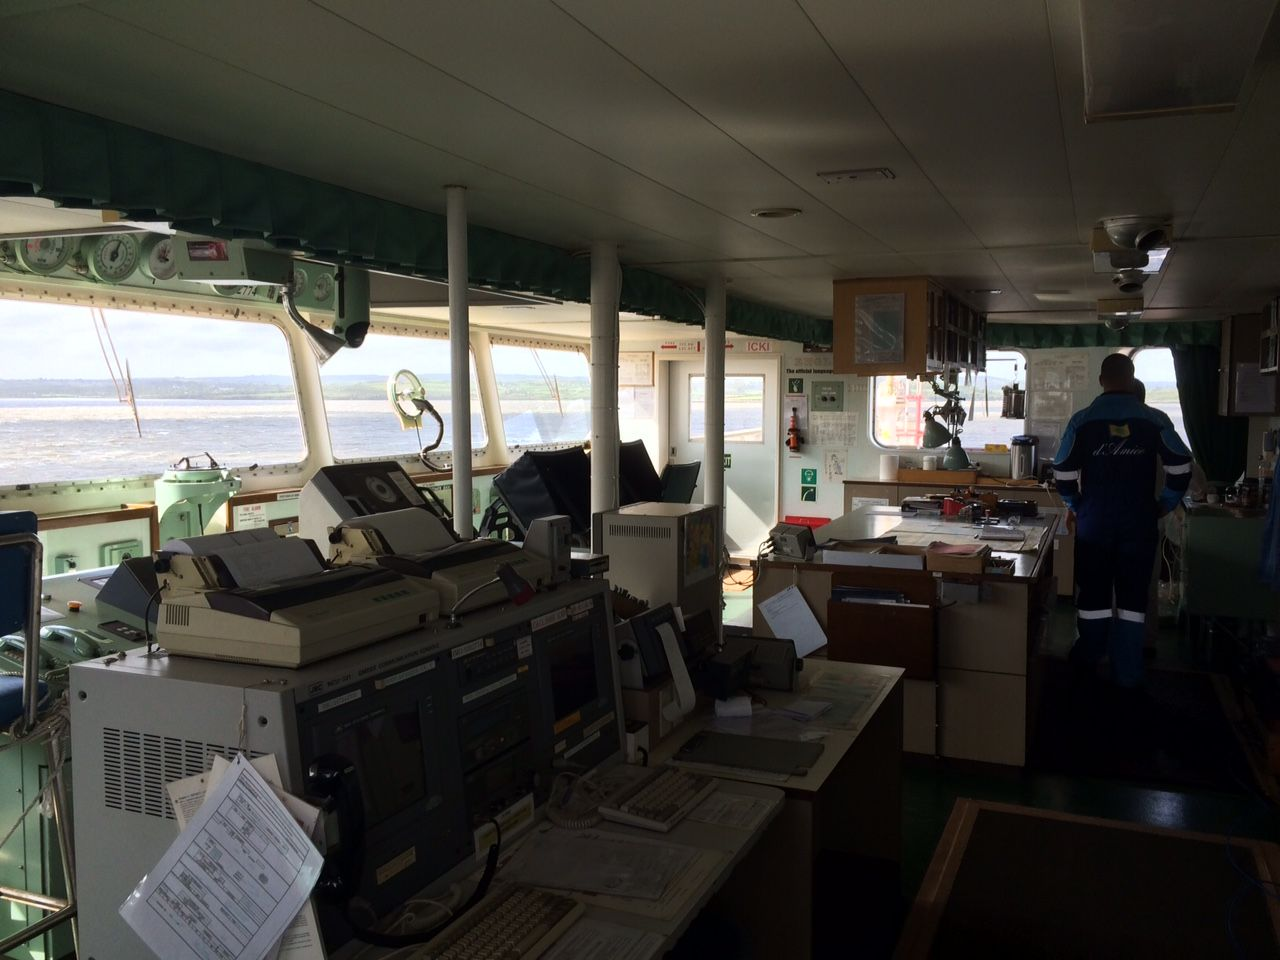 IT support on board a ship in Foynes2